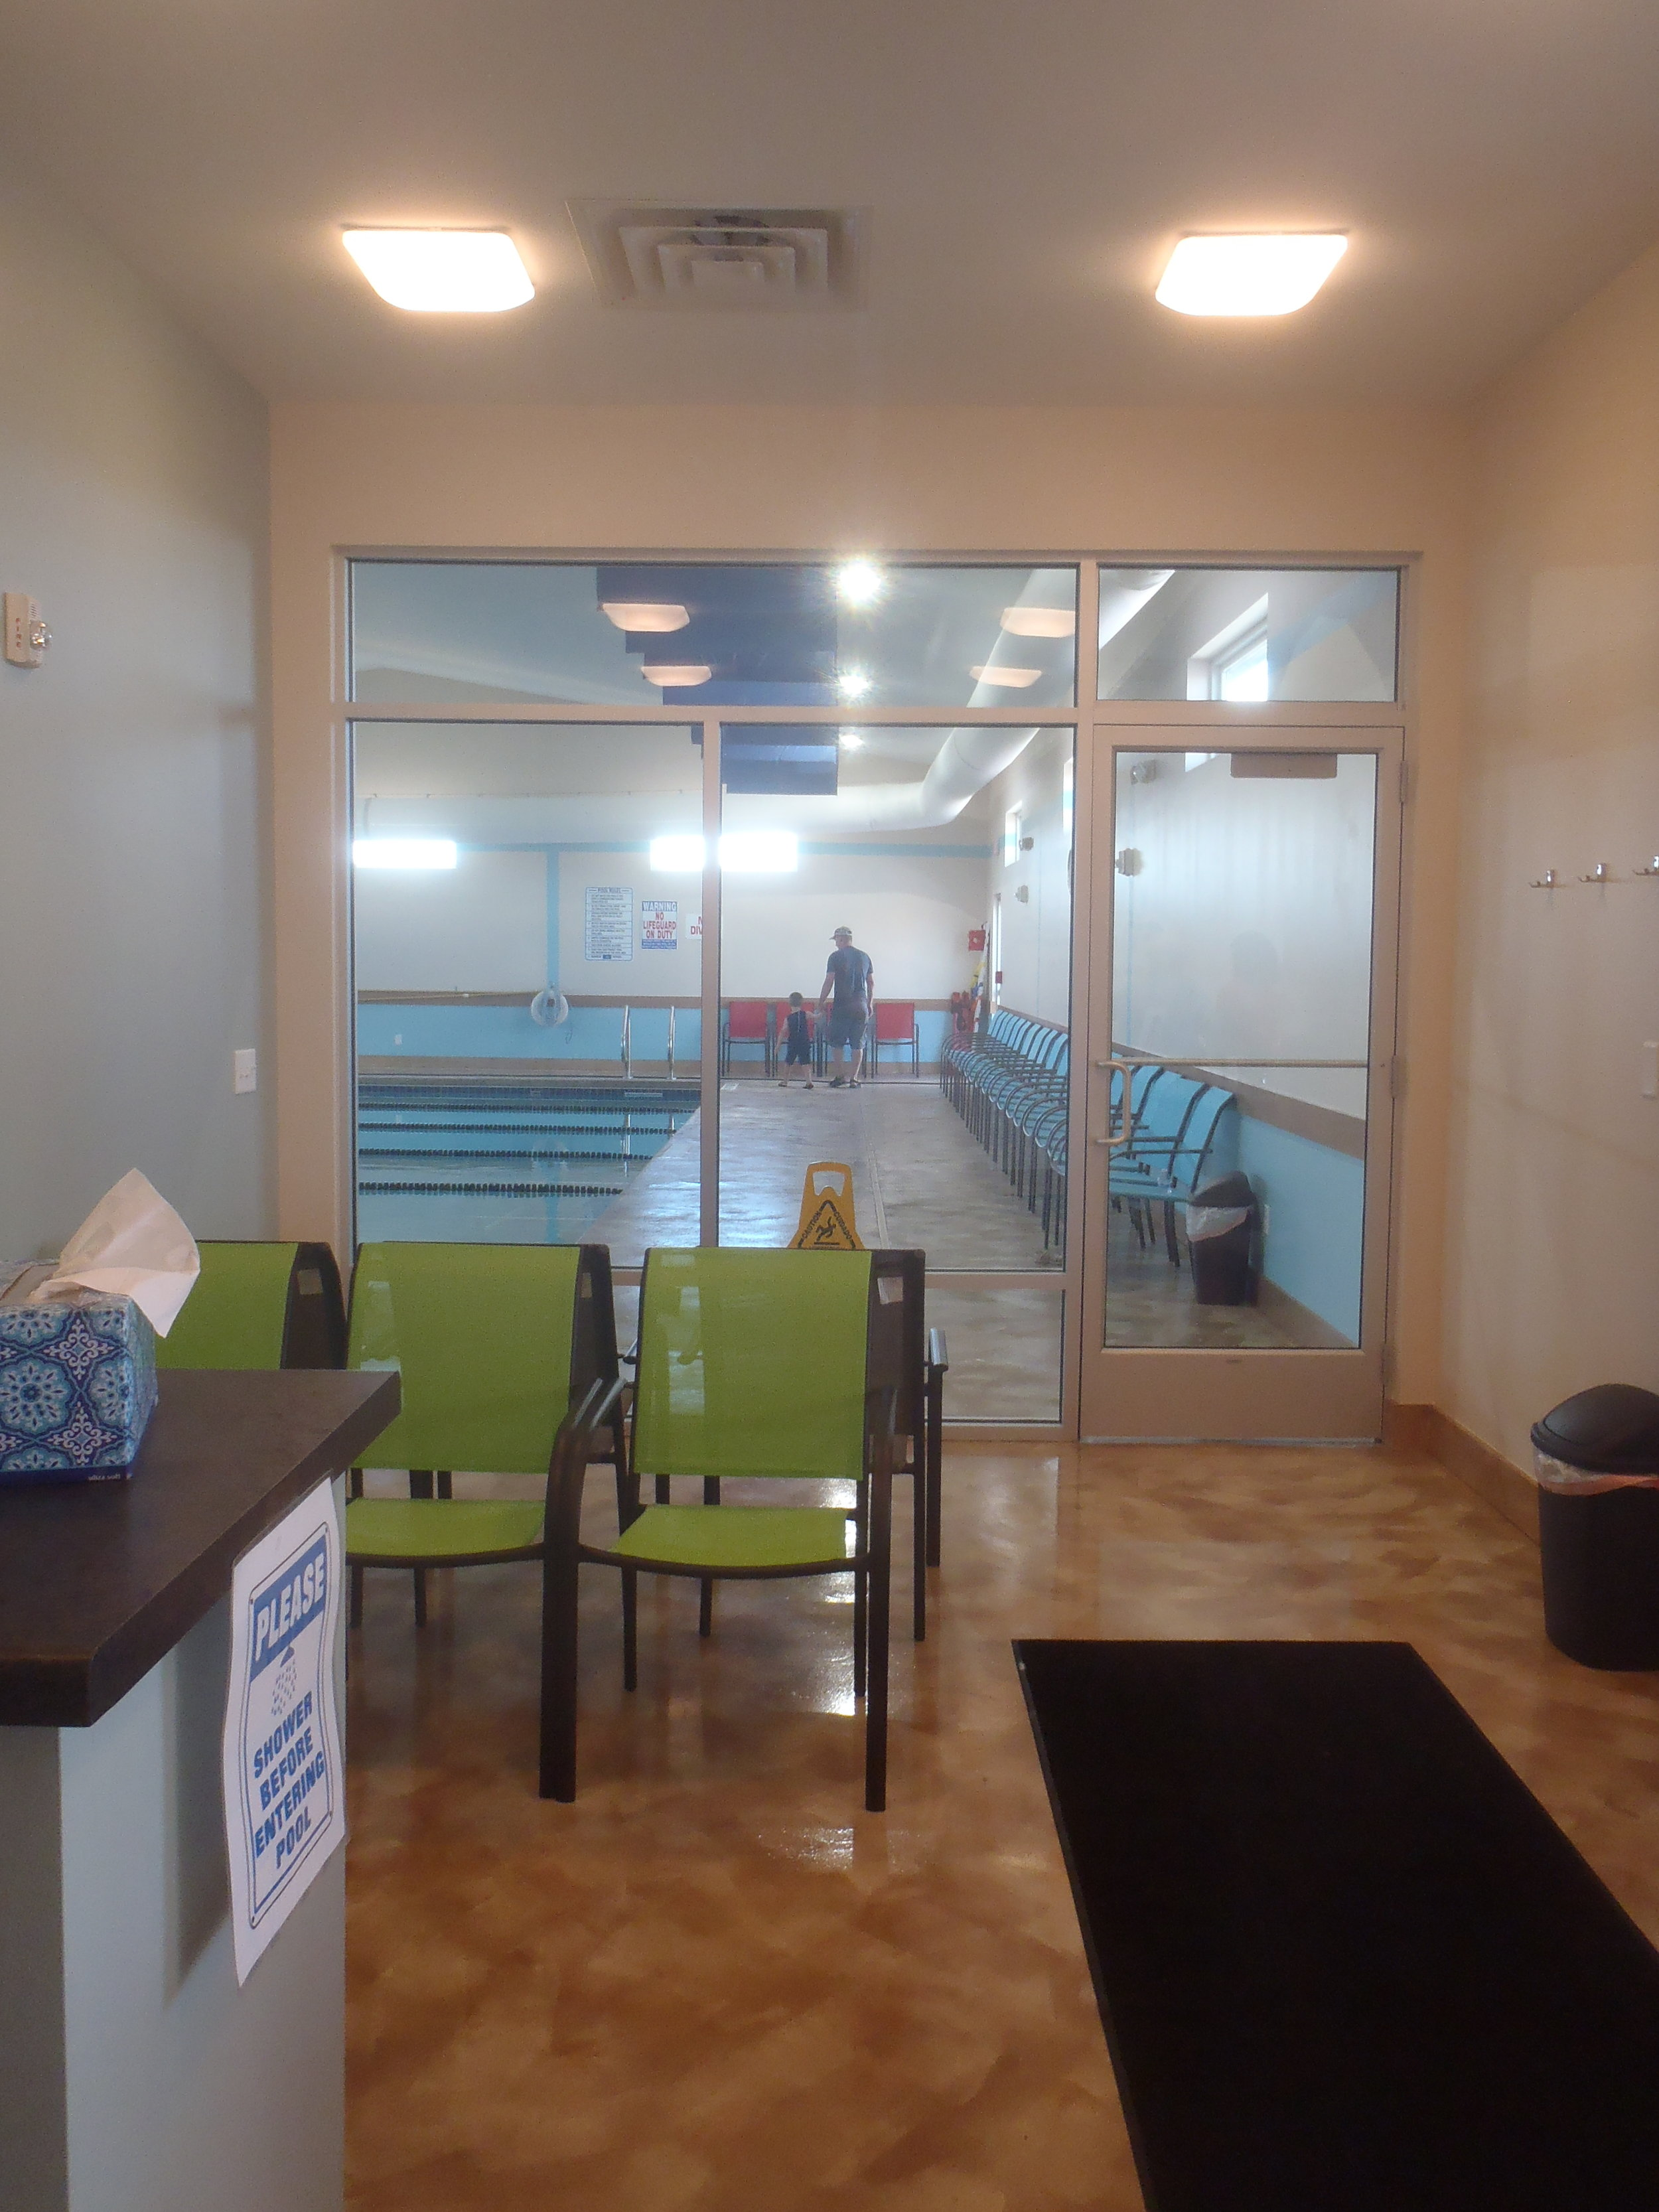 Lobby area at Little Strokes Swim Academy in Waunakee, WI